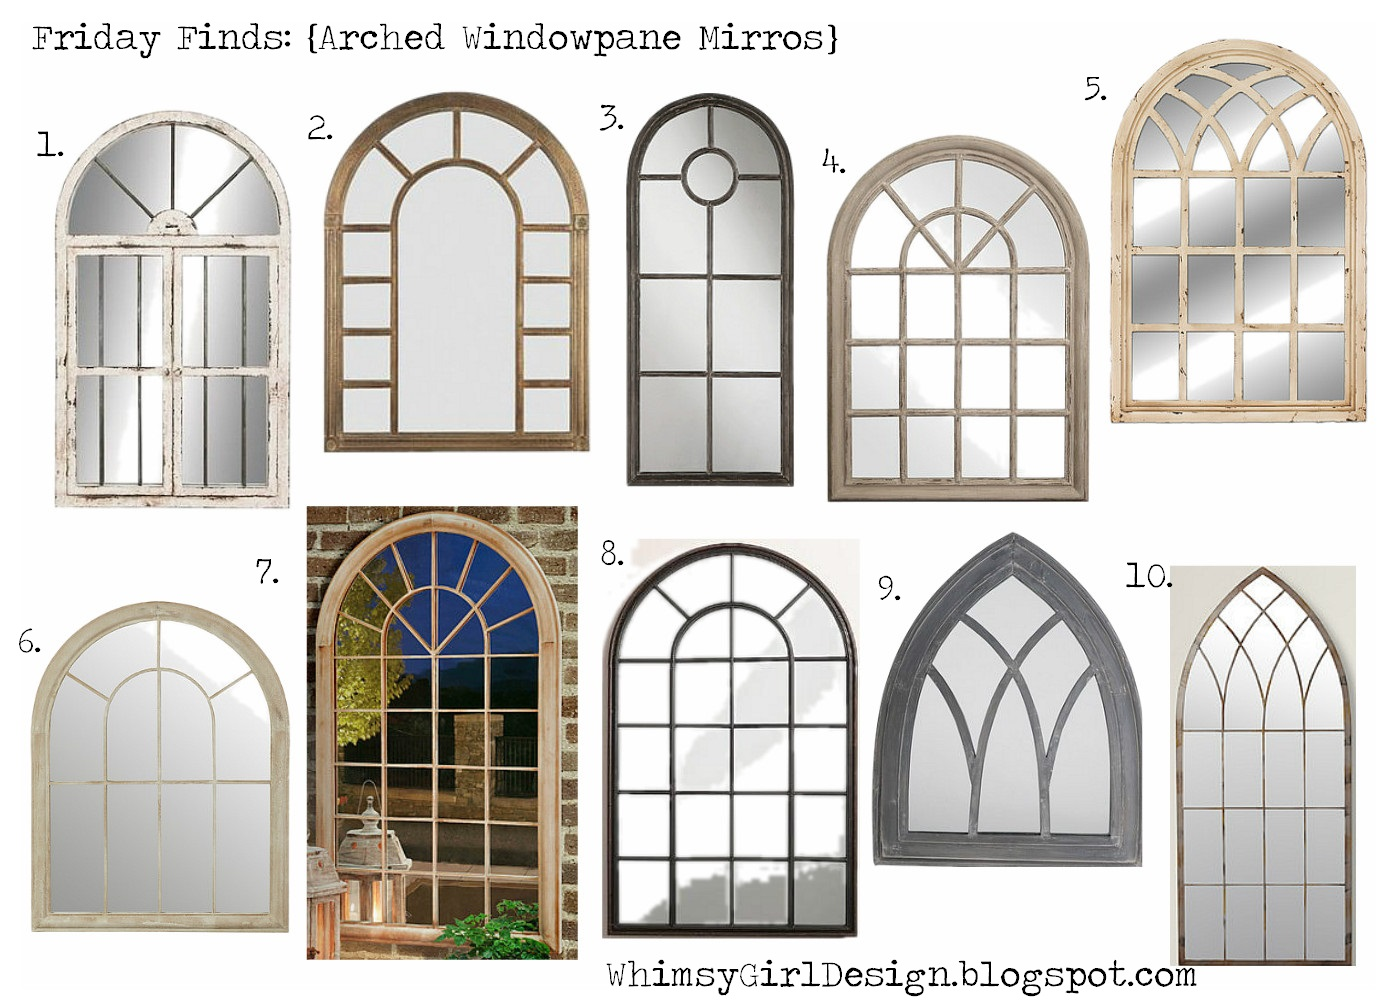 Whimsy girl friday finds arch windowpane mirrors for Window design arch